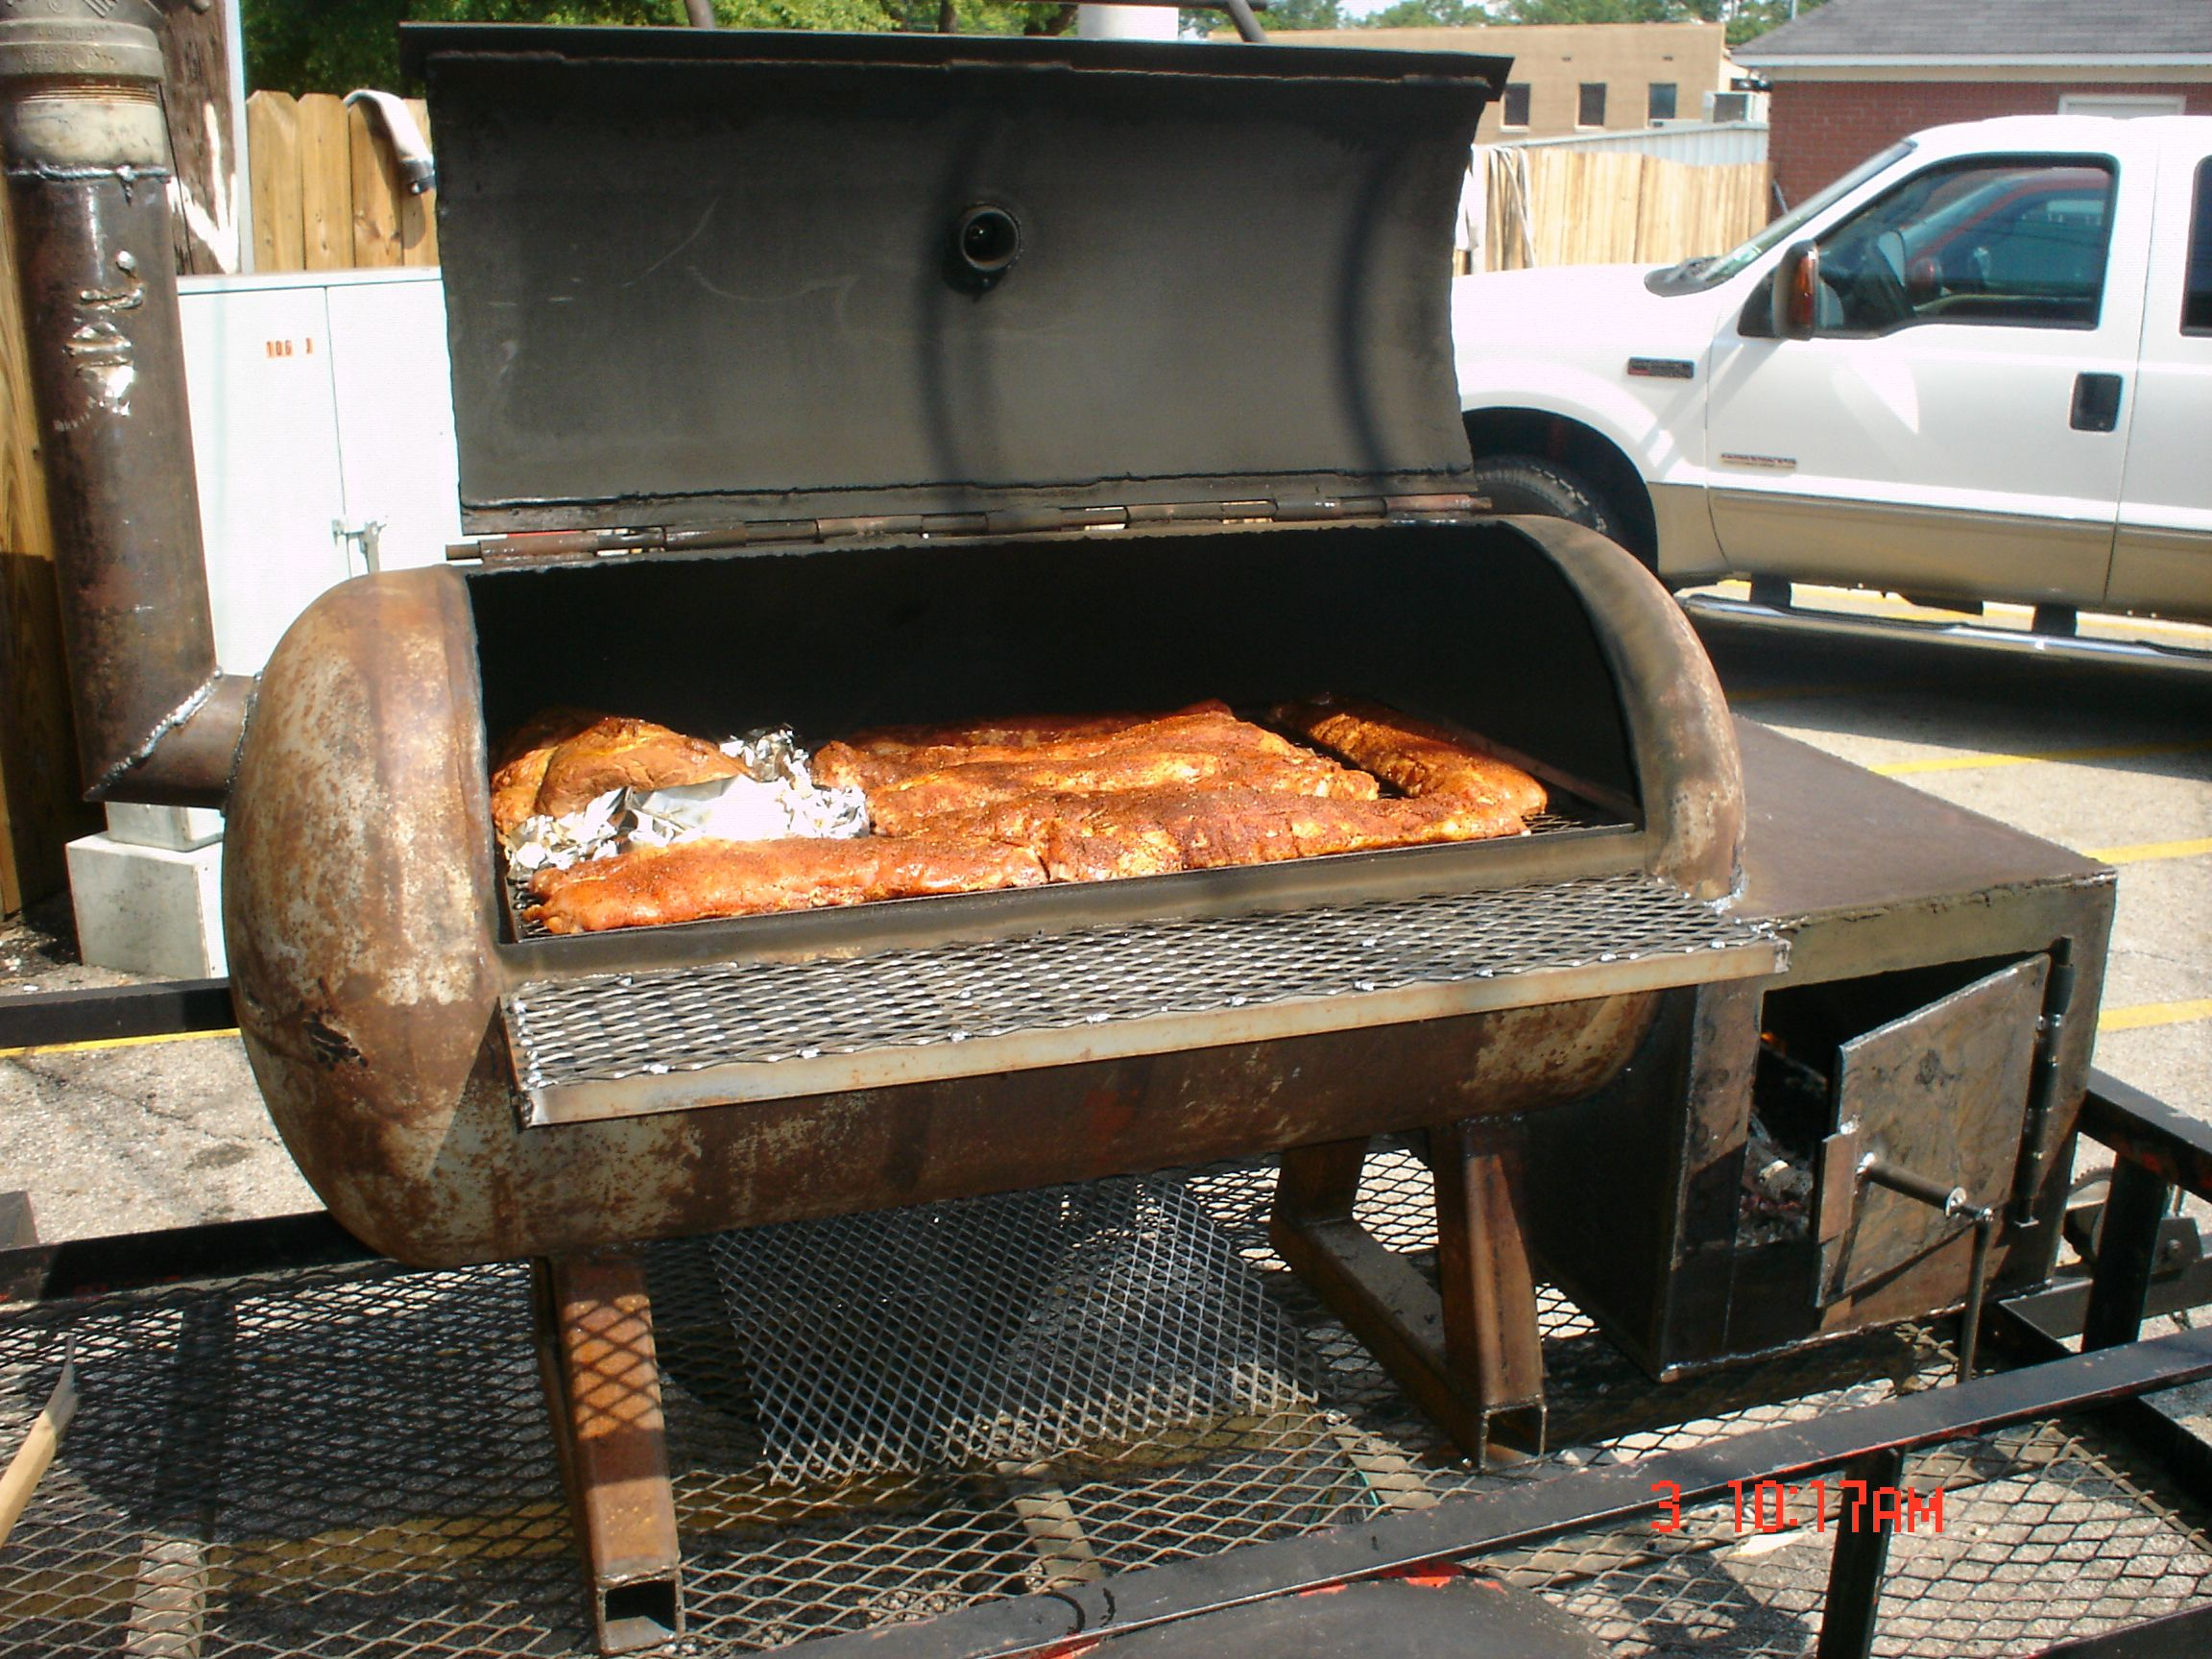 Pin By Bill Wardlaw On Some Of My Handywork Bbq Grill Design Bbq Grill Diy Bbq Kitchen